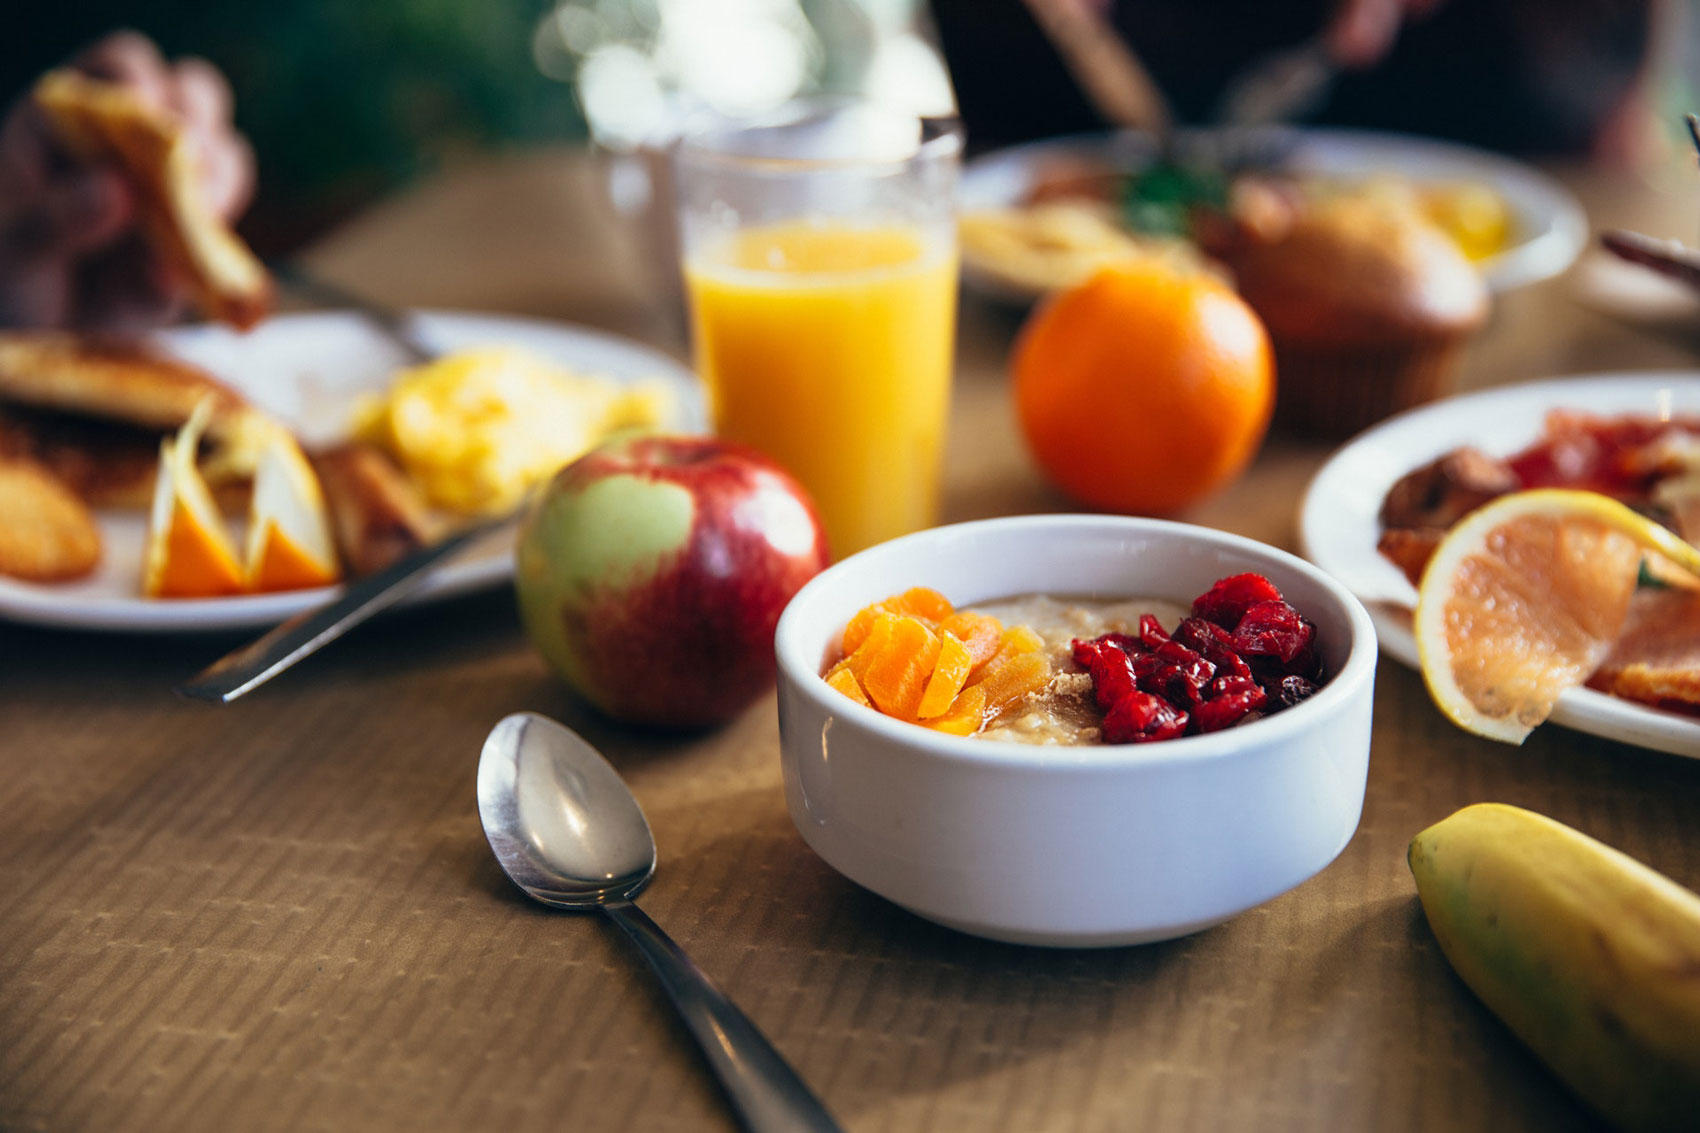 Image of breakfast food laid out on a table